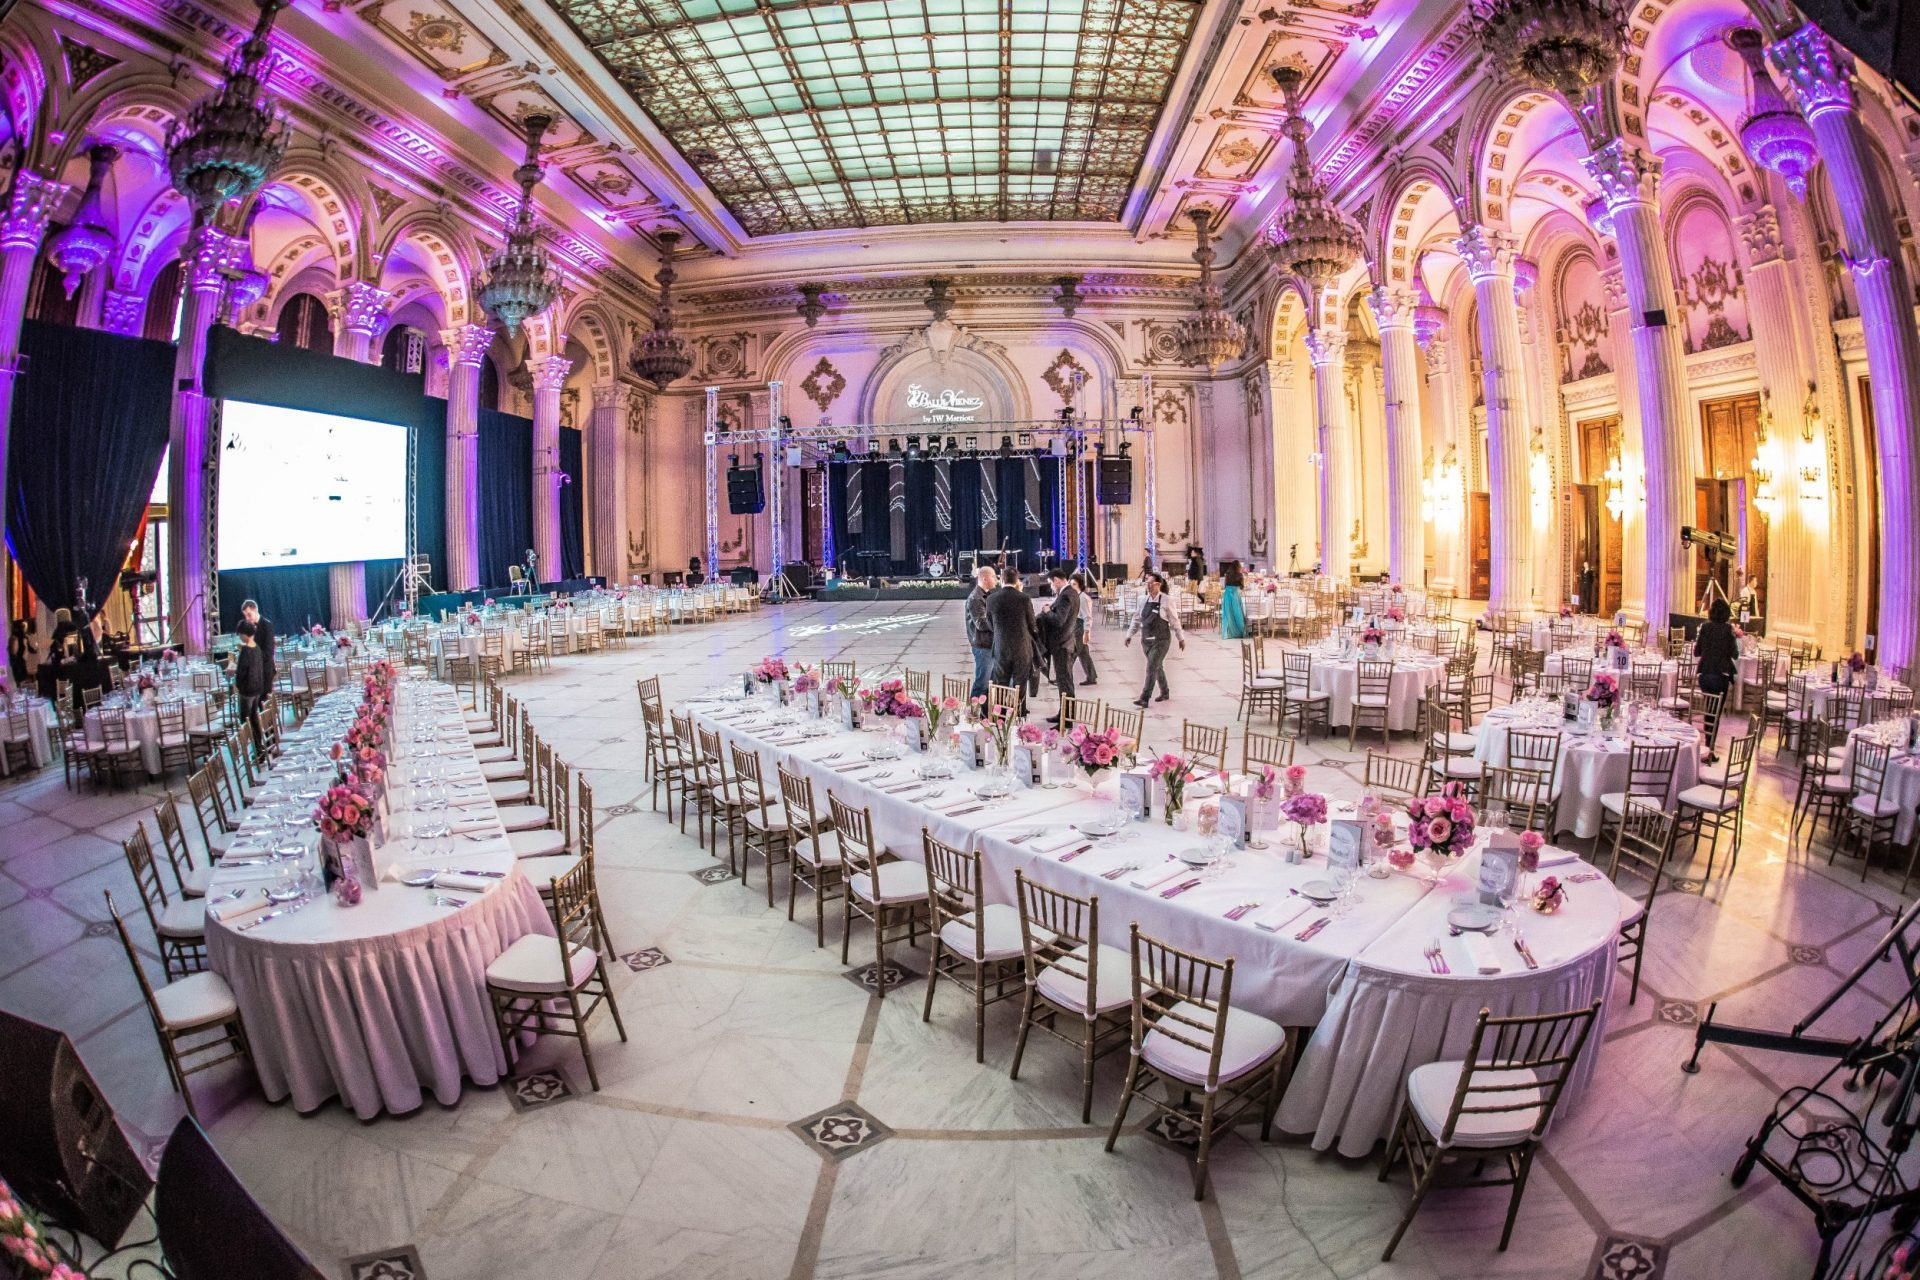 Yesevents Your Perfect Event